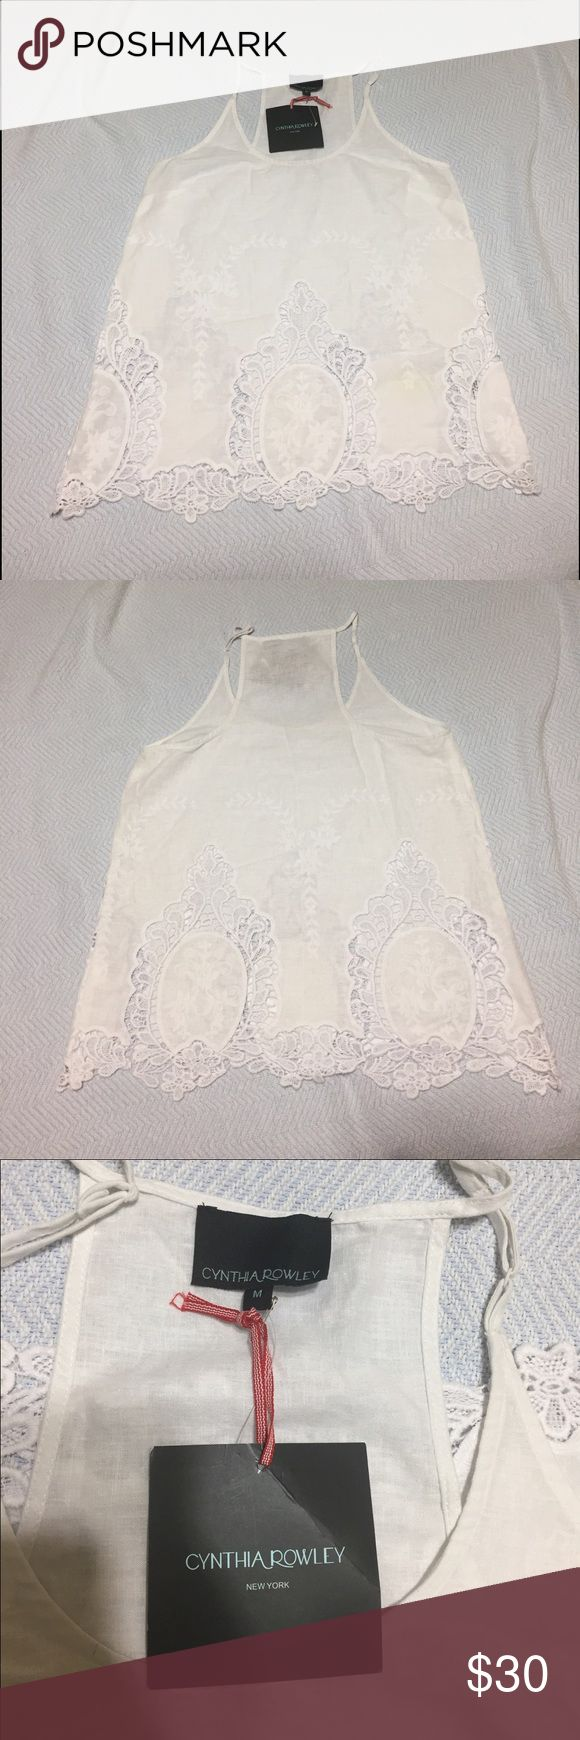 Cynthia Rowley sleeveless For an elegant and fresh outfit: Cynthia Rowley white embroidered sleeveless linen blouse. New. Size M Cynthia Rowley Tops Blouses